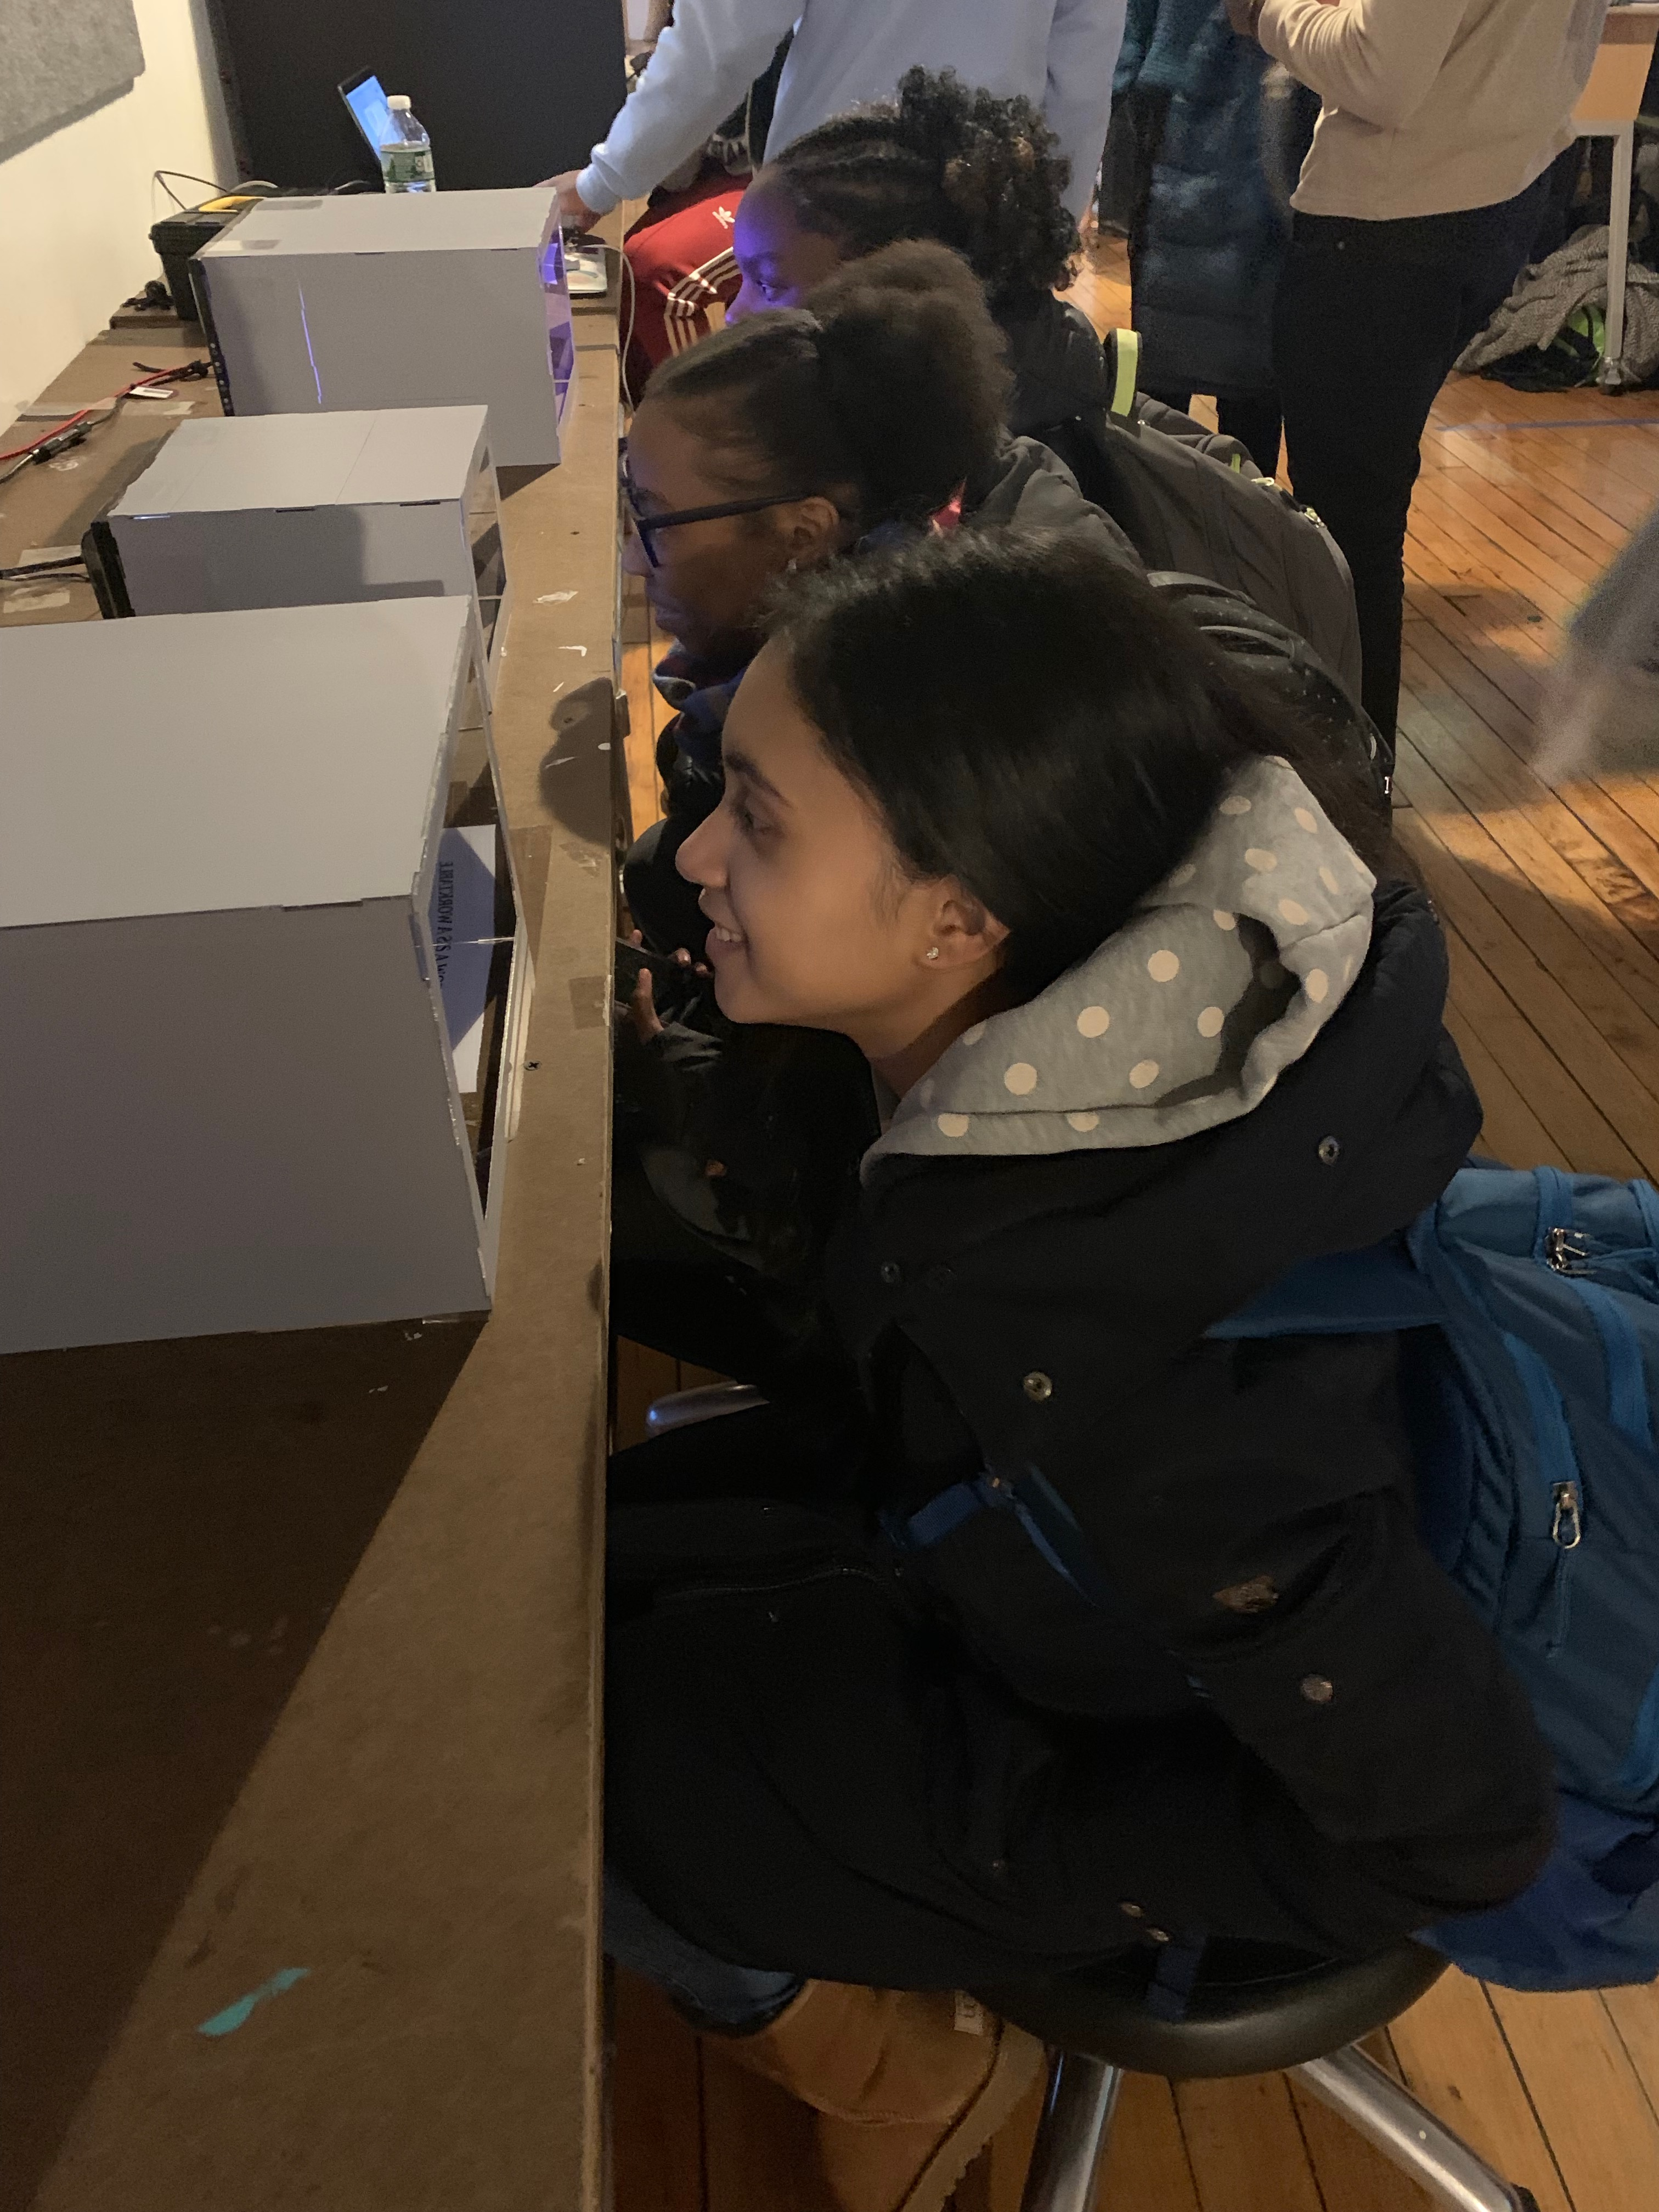 Girls looking into mirror boxes.